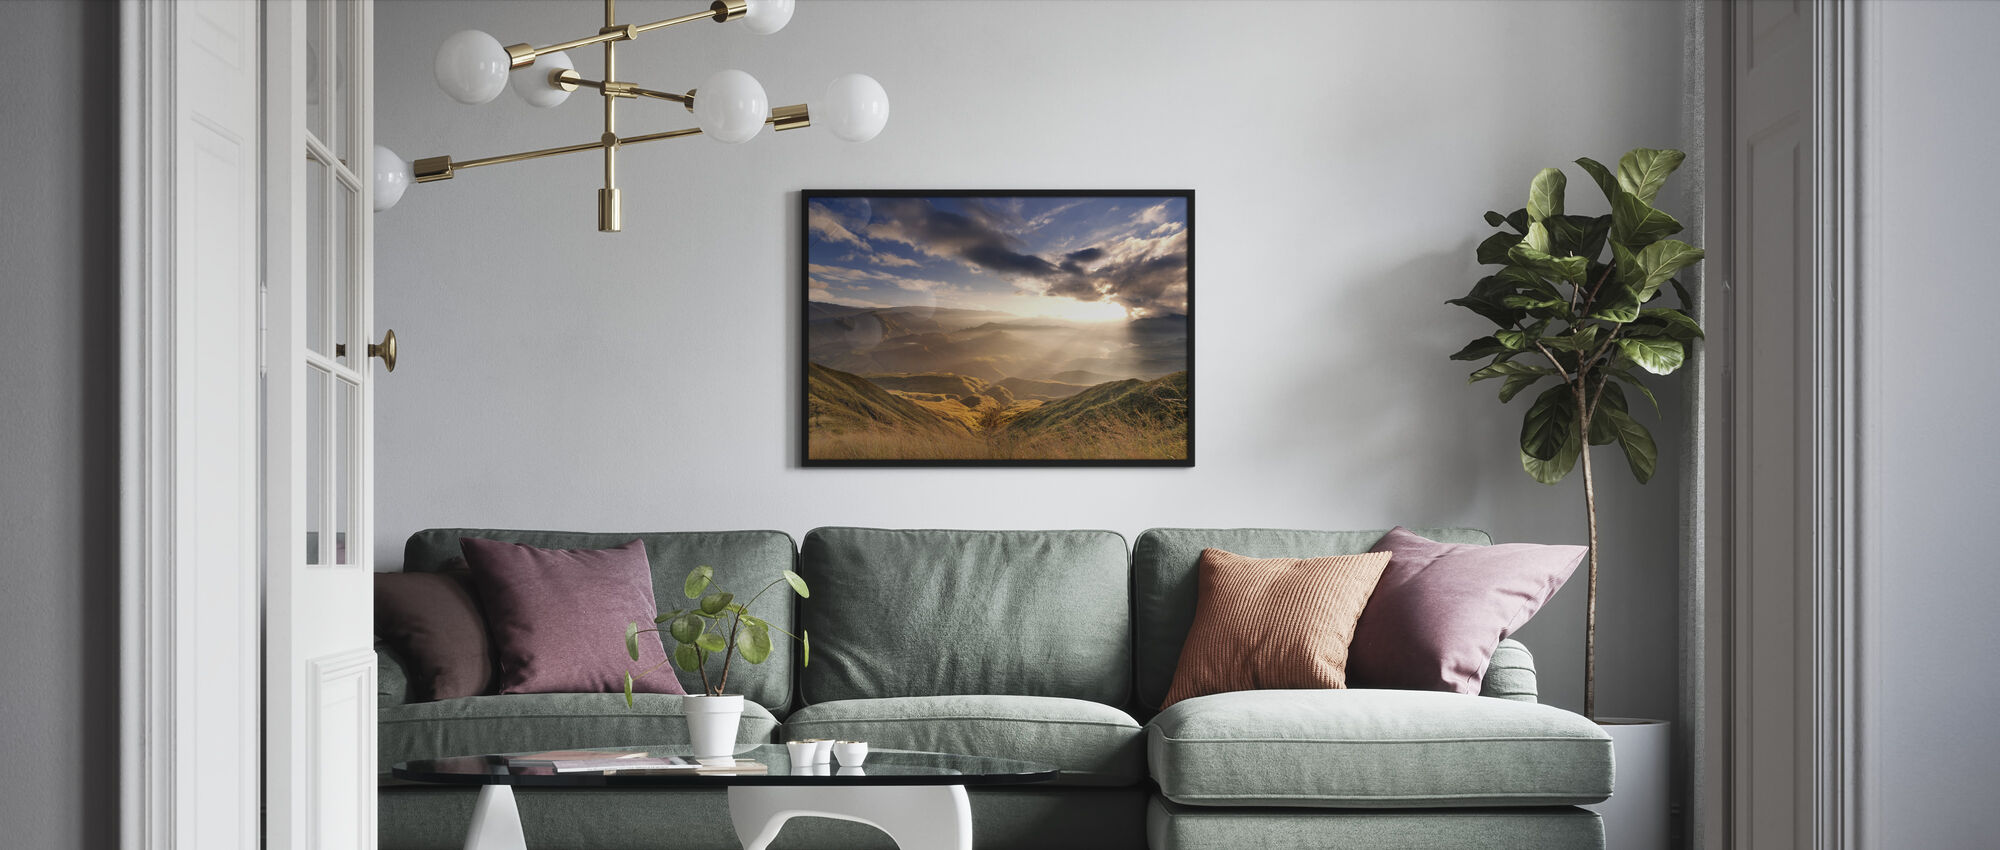 Sunrise Over Ridges - Framed print - Living Room